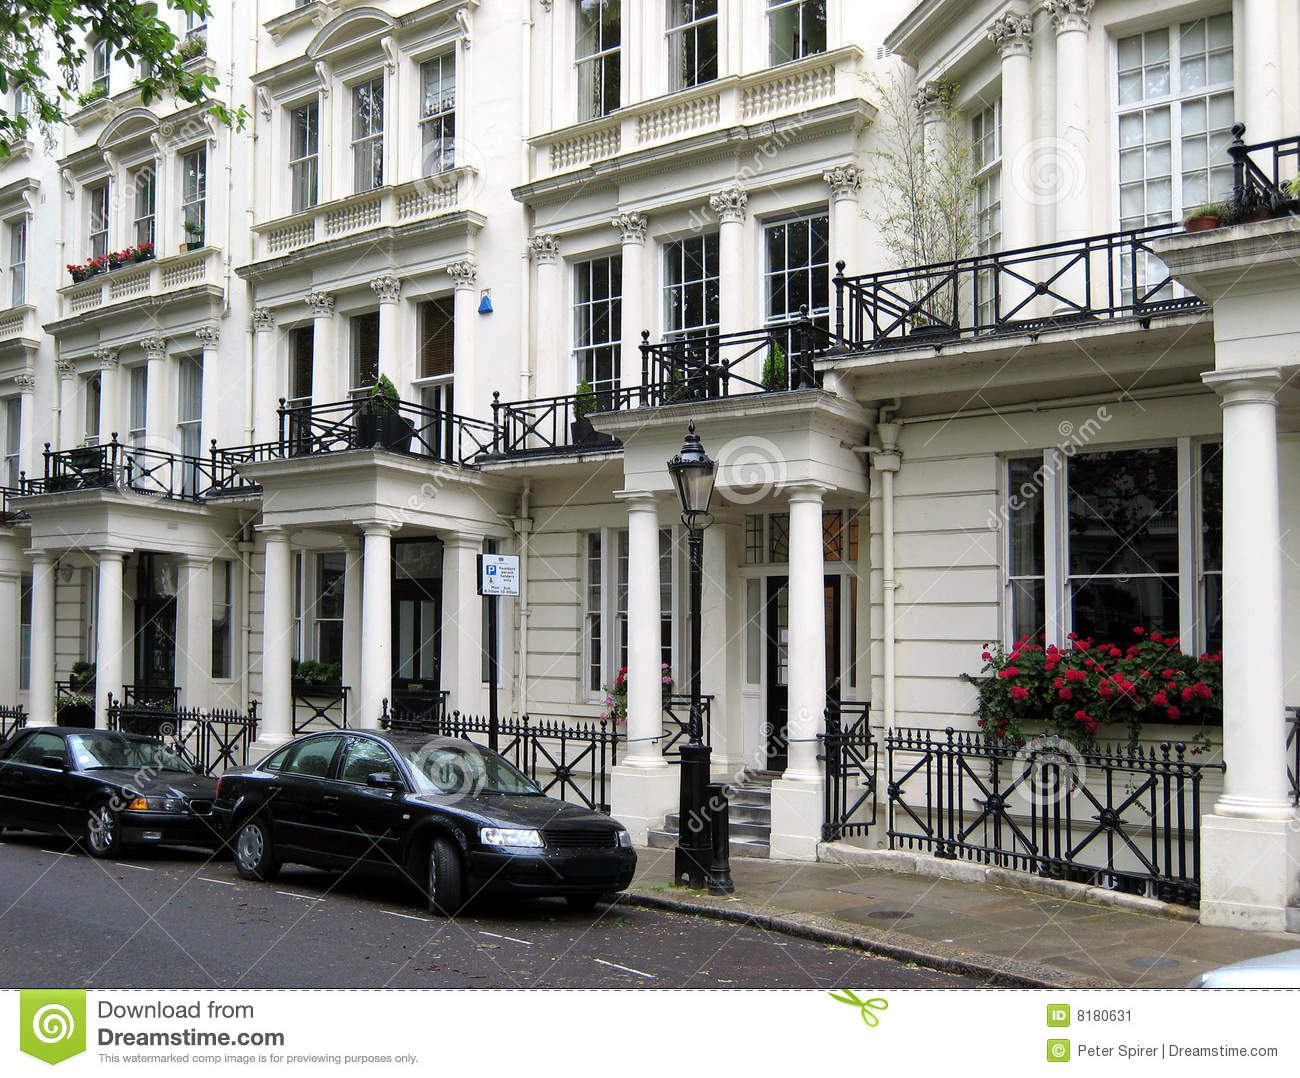 027h 0071 further Tour Of House likewise Stock Image Elegant London Townhouses Image8180631 moreover oliva14 also Tall Minimalistic Hillside House Built From Concrete. on traditional townhouse plans